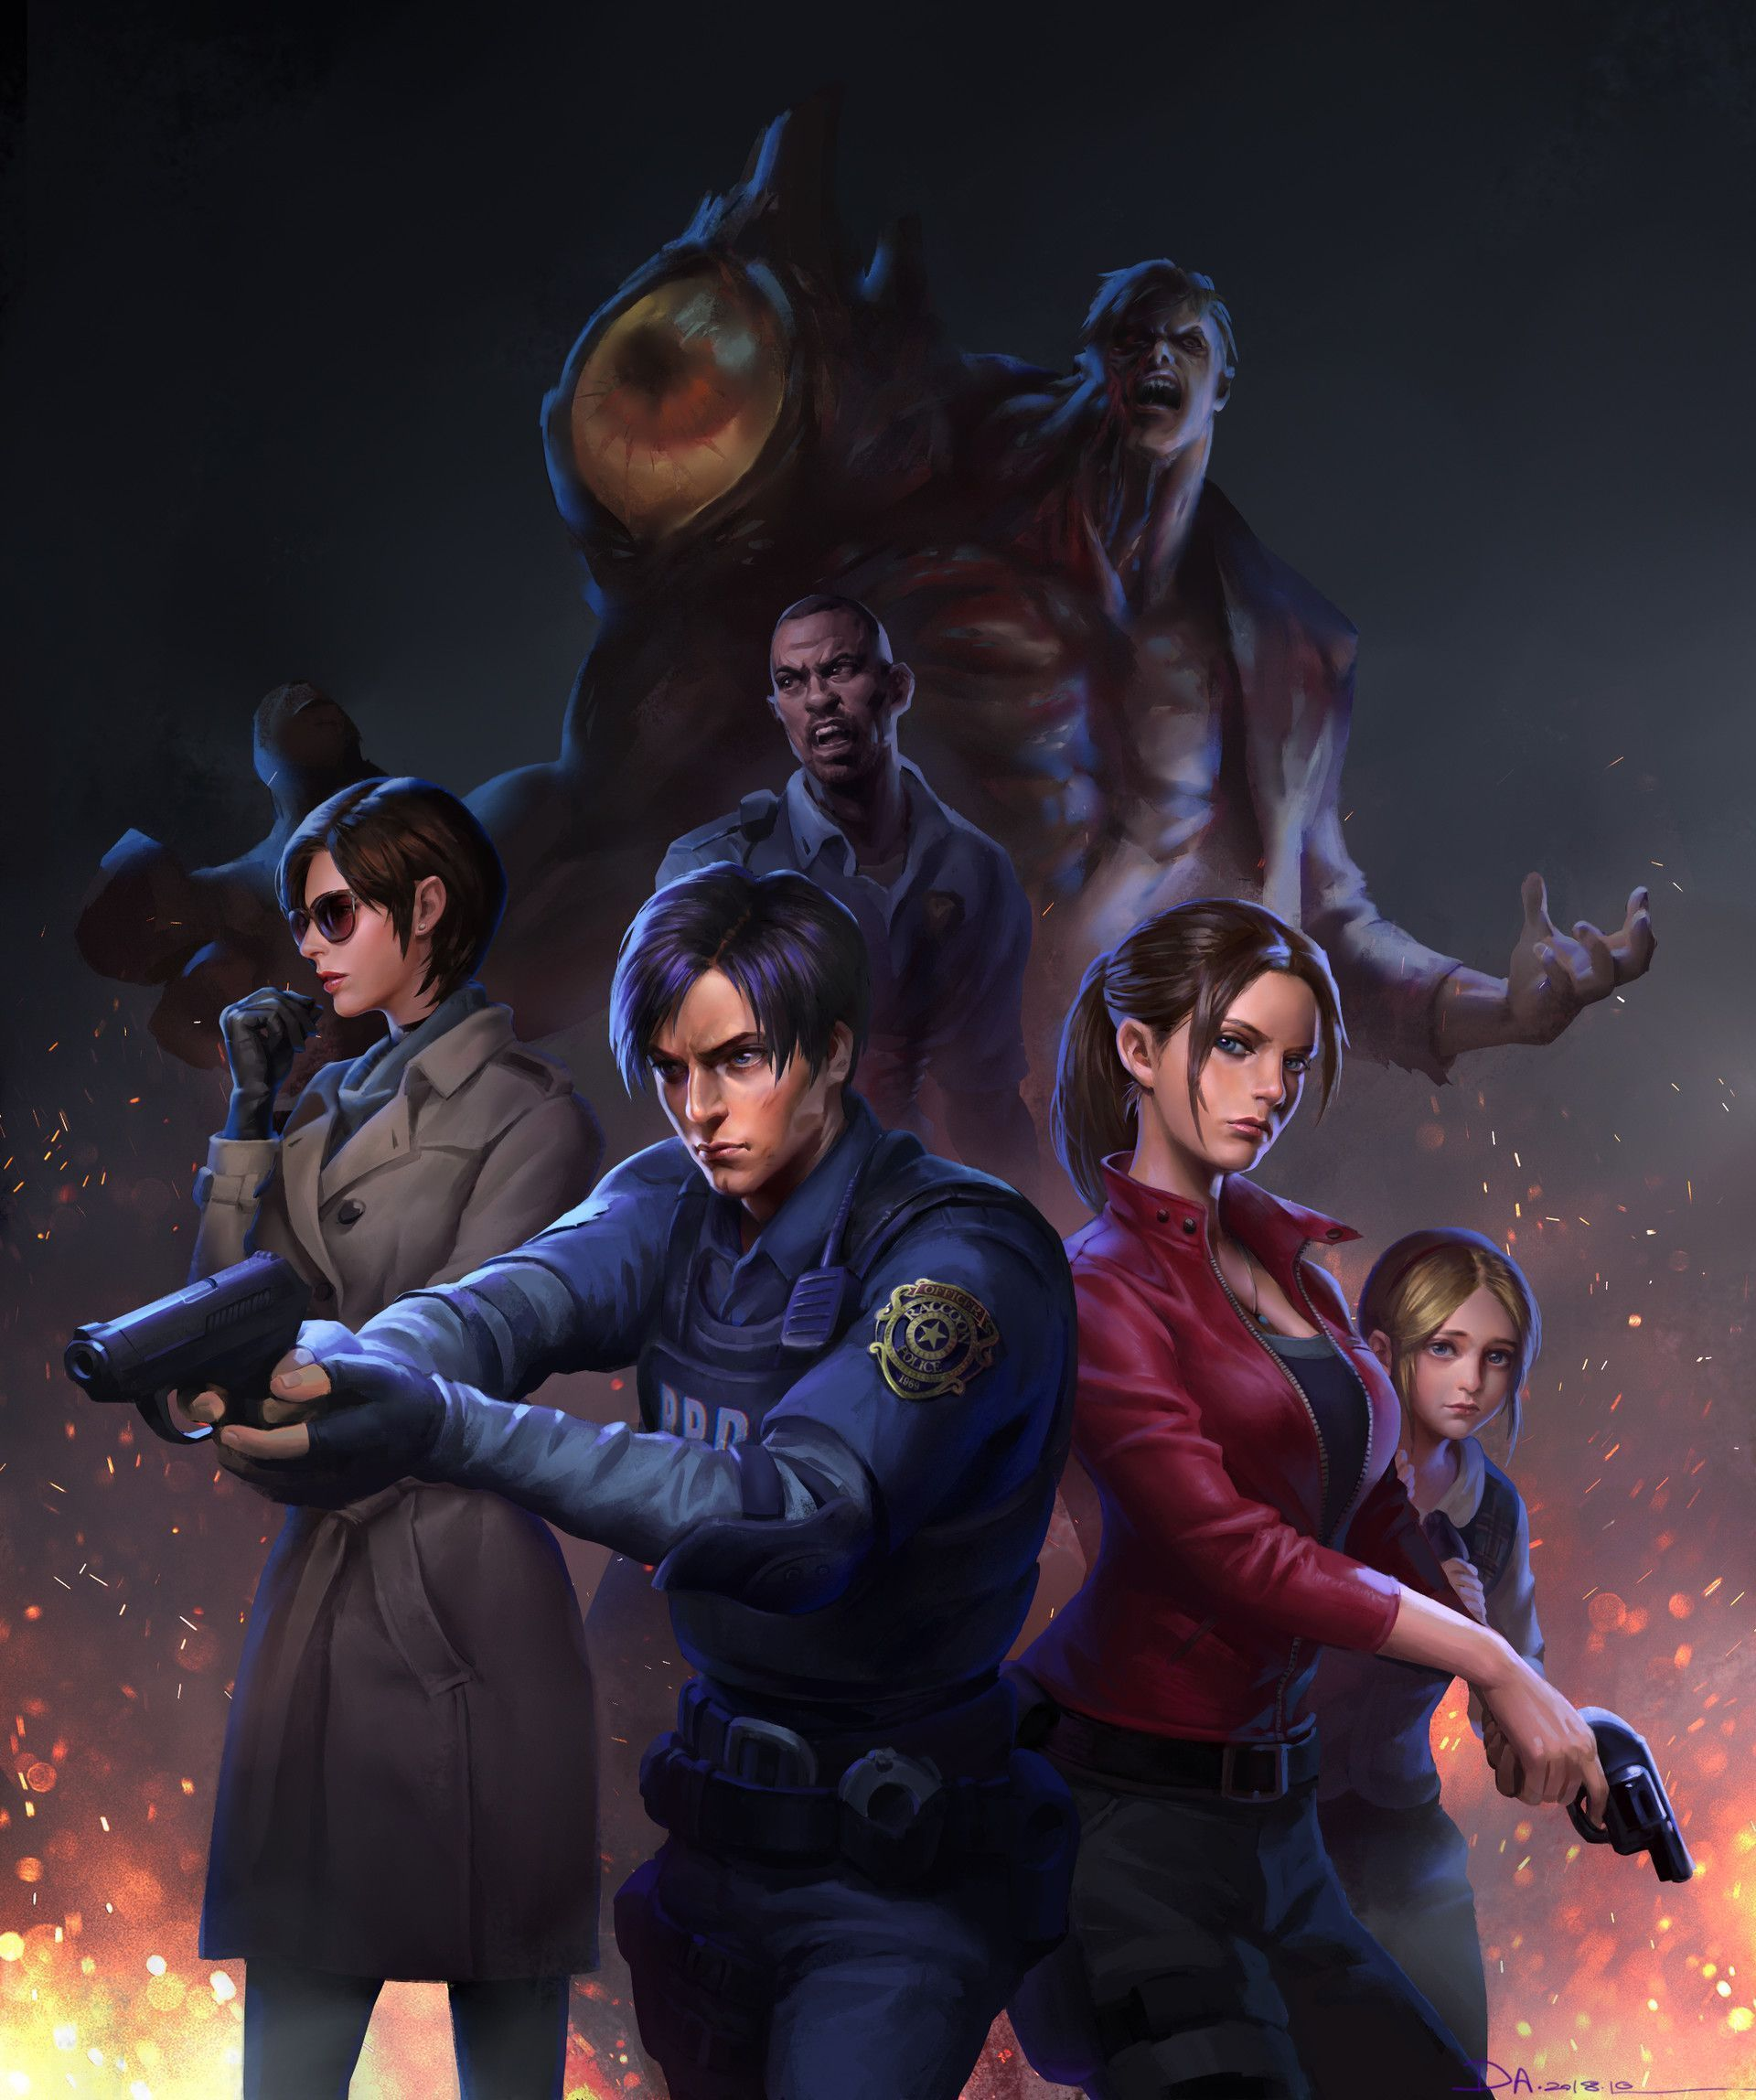 Create Your Own Hand Drawn Portrait Resident Evil Anime Resident Evil Leon Resident Evil 1 Remake